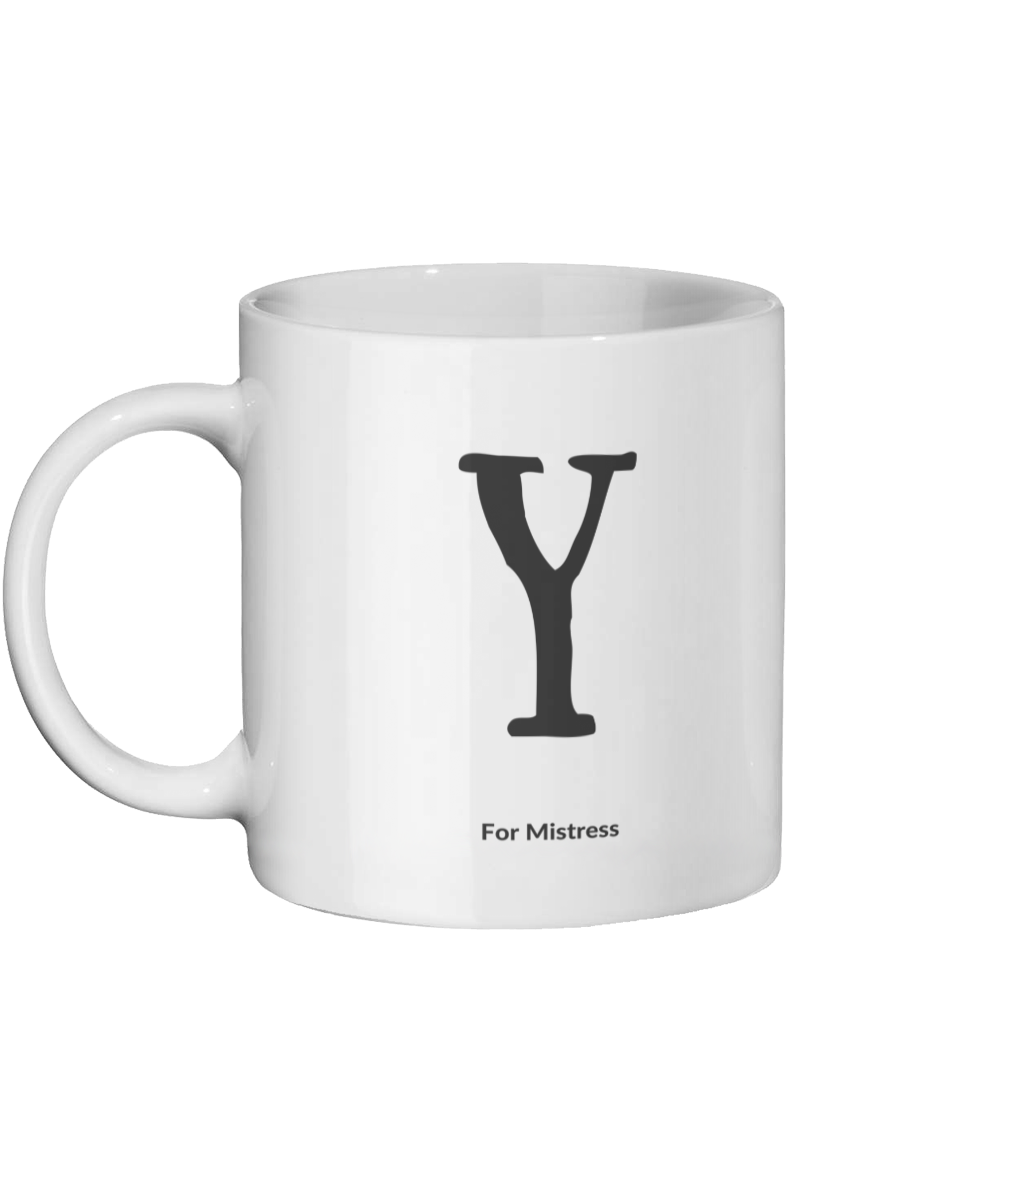 Y For Mistress Mug Left-side